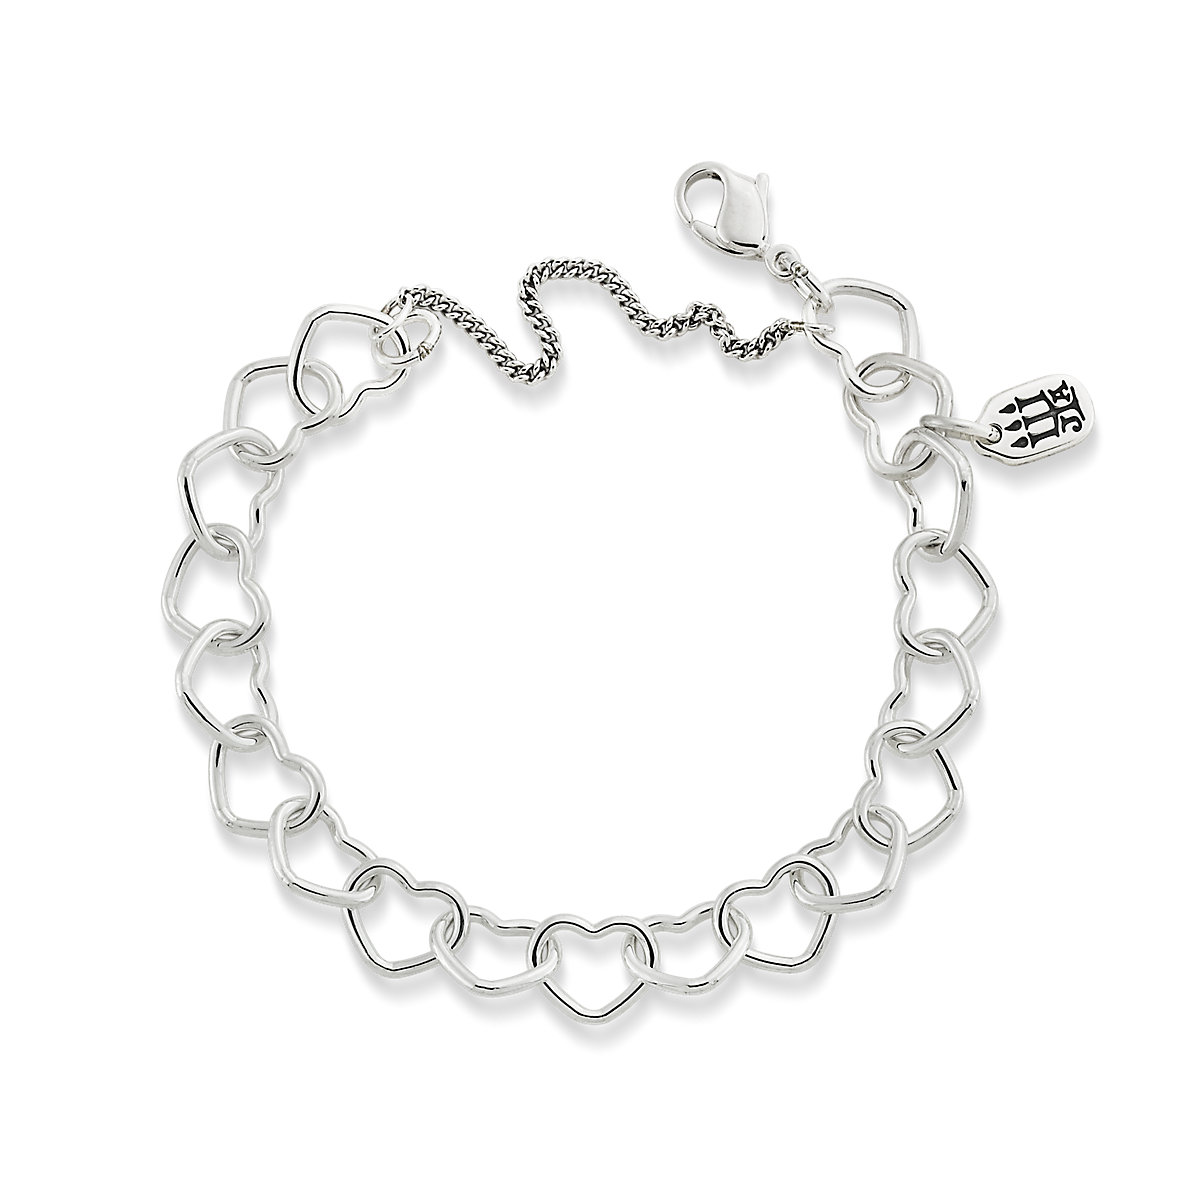 id by sterling silver diamonds bracelet in peretti fit yard hei constrain elsa wid ed jewelry bracelets fmt the